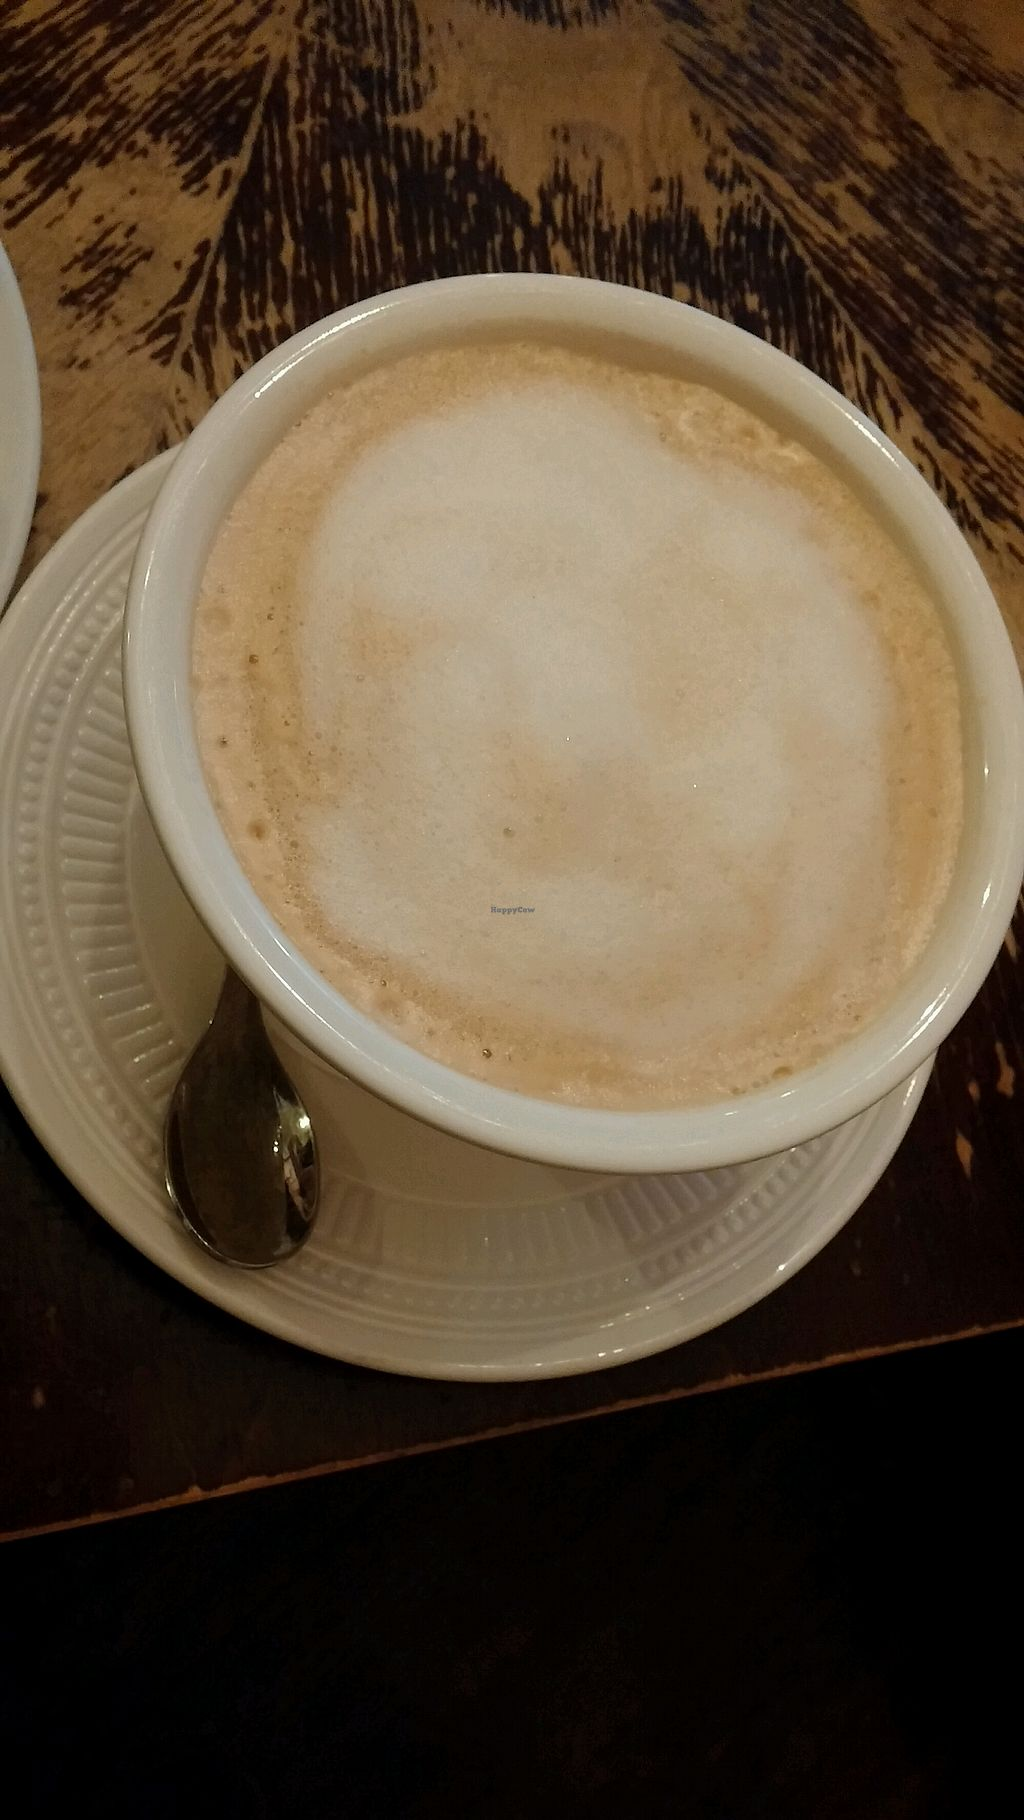 "Photo of Vohvelikahvila  by <a href=""/members/profile/NHT"">NHT</a> <br/>Cafe au lait with Oatly iKaffe  <br/> February 13, 2018  - <a href='/contact/abuse/image/67992/358862'>Report</a>"